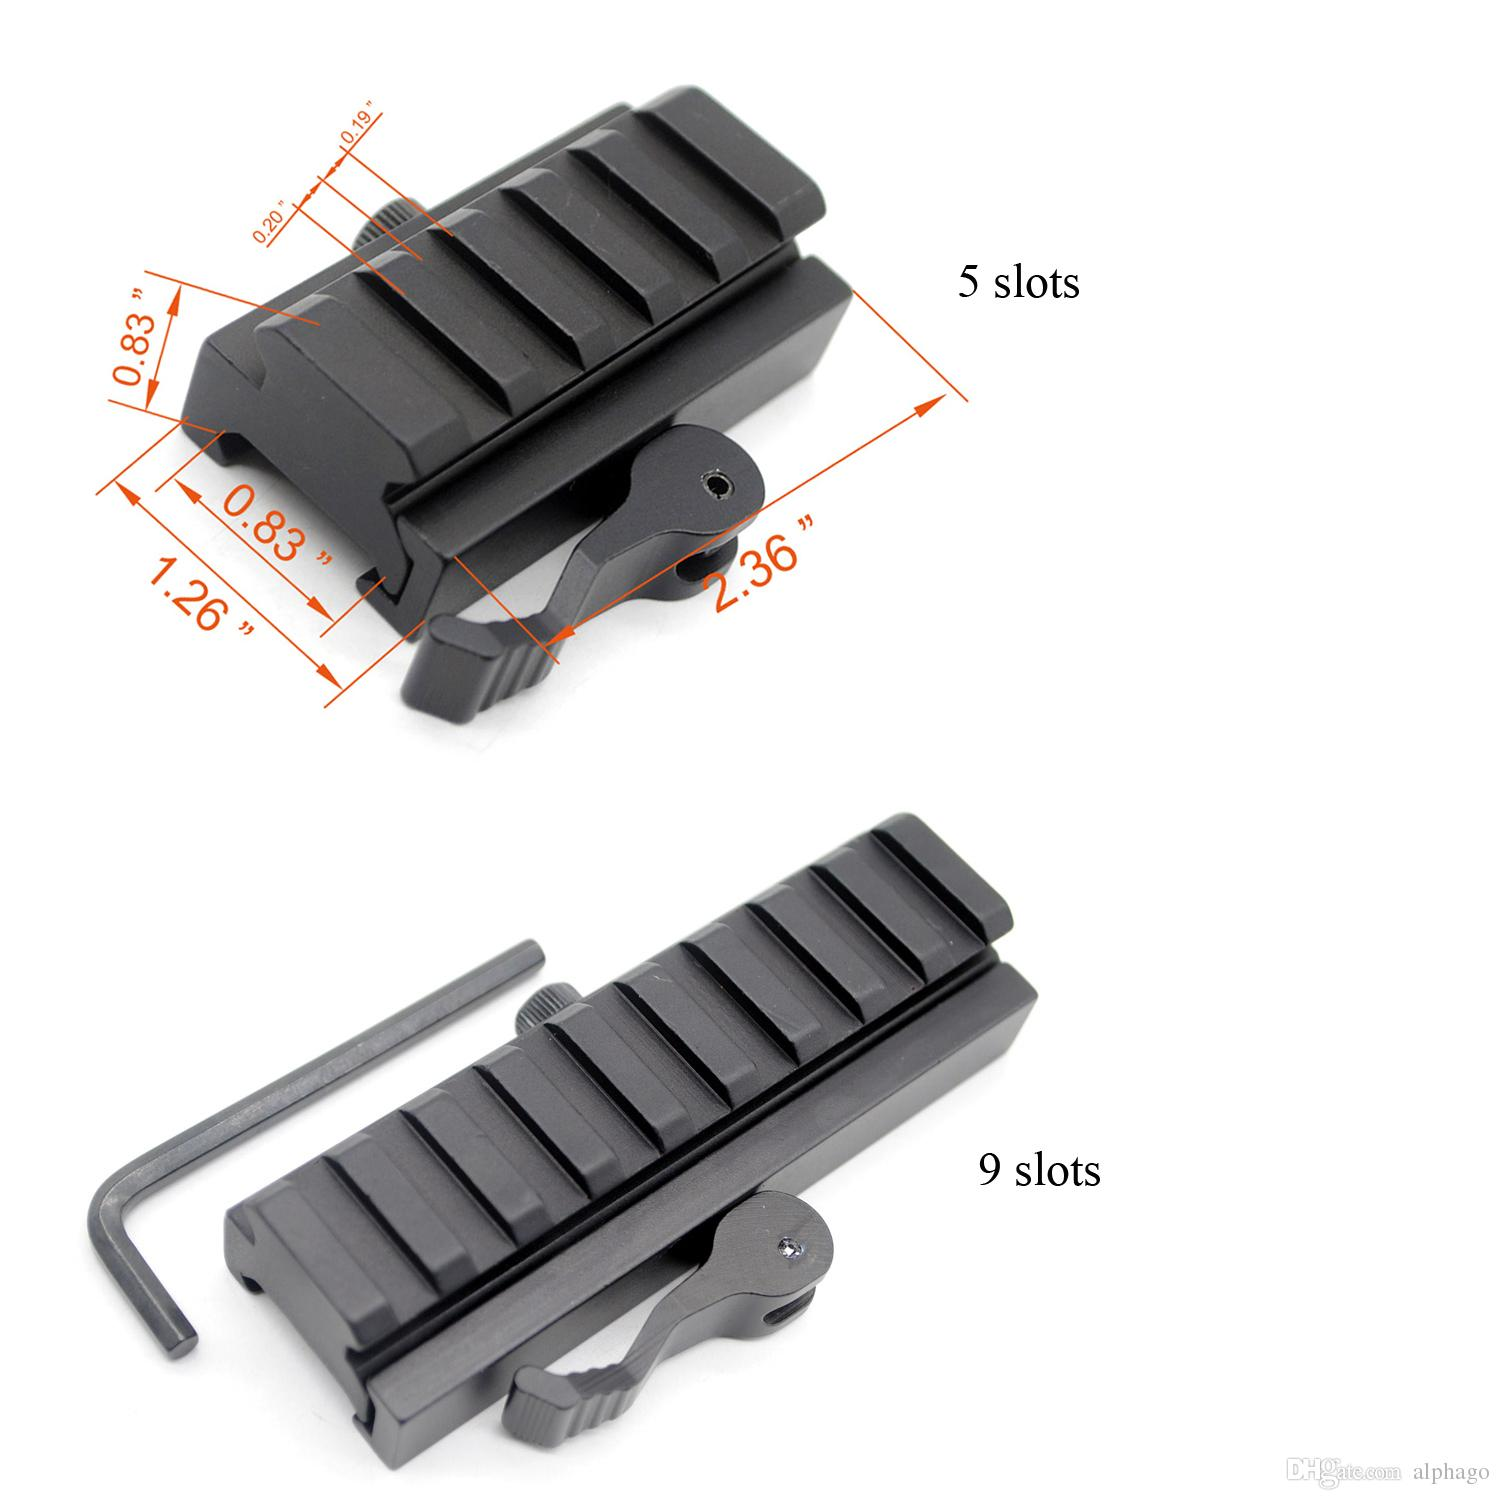 20 mm Picatinny/Weaver Rail Baese 5 / 9 slots QD Quick Release Riser Scope Mount Adapter Free Shipping